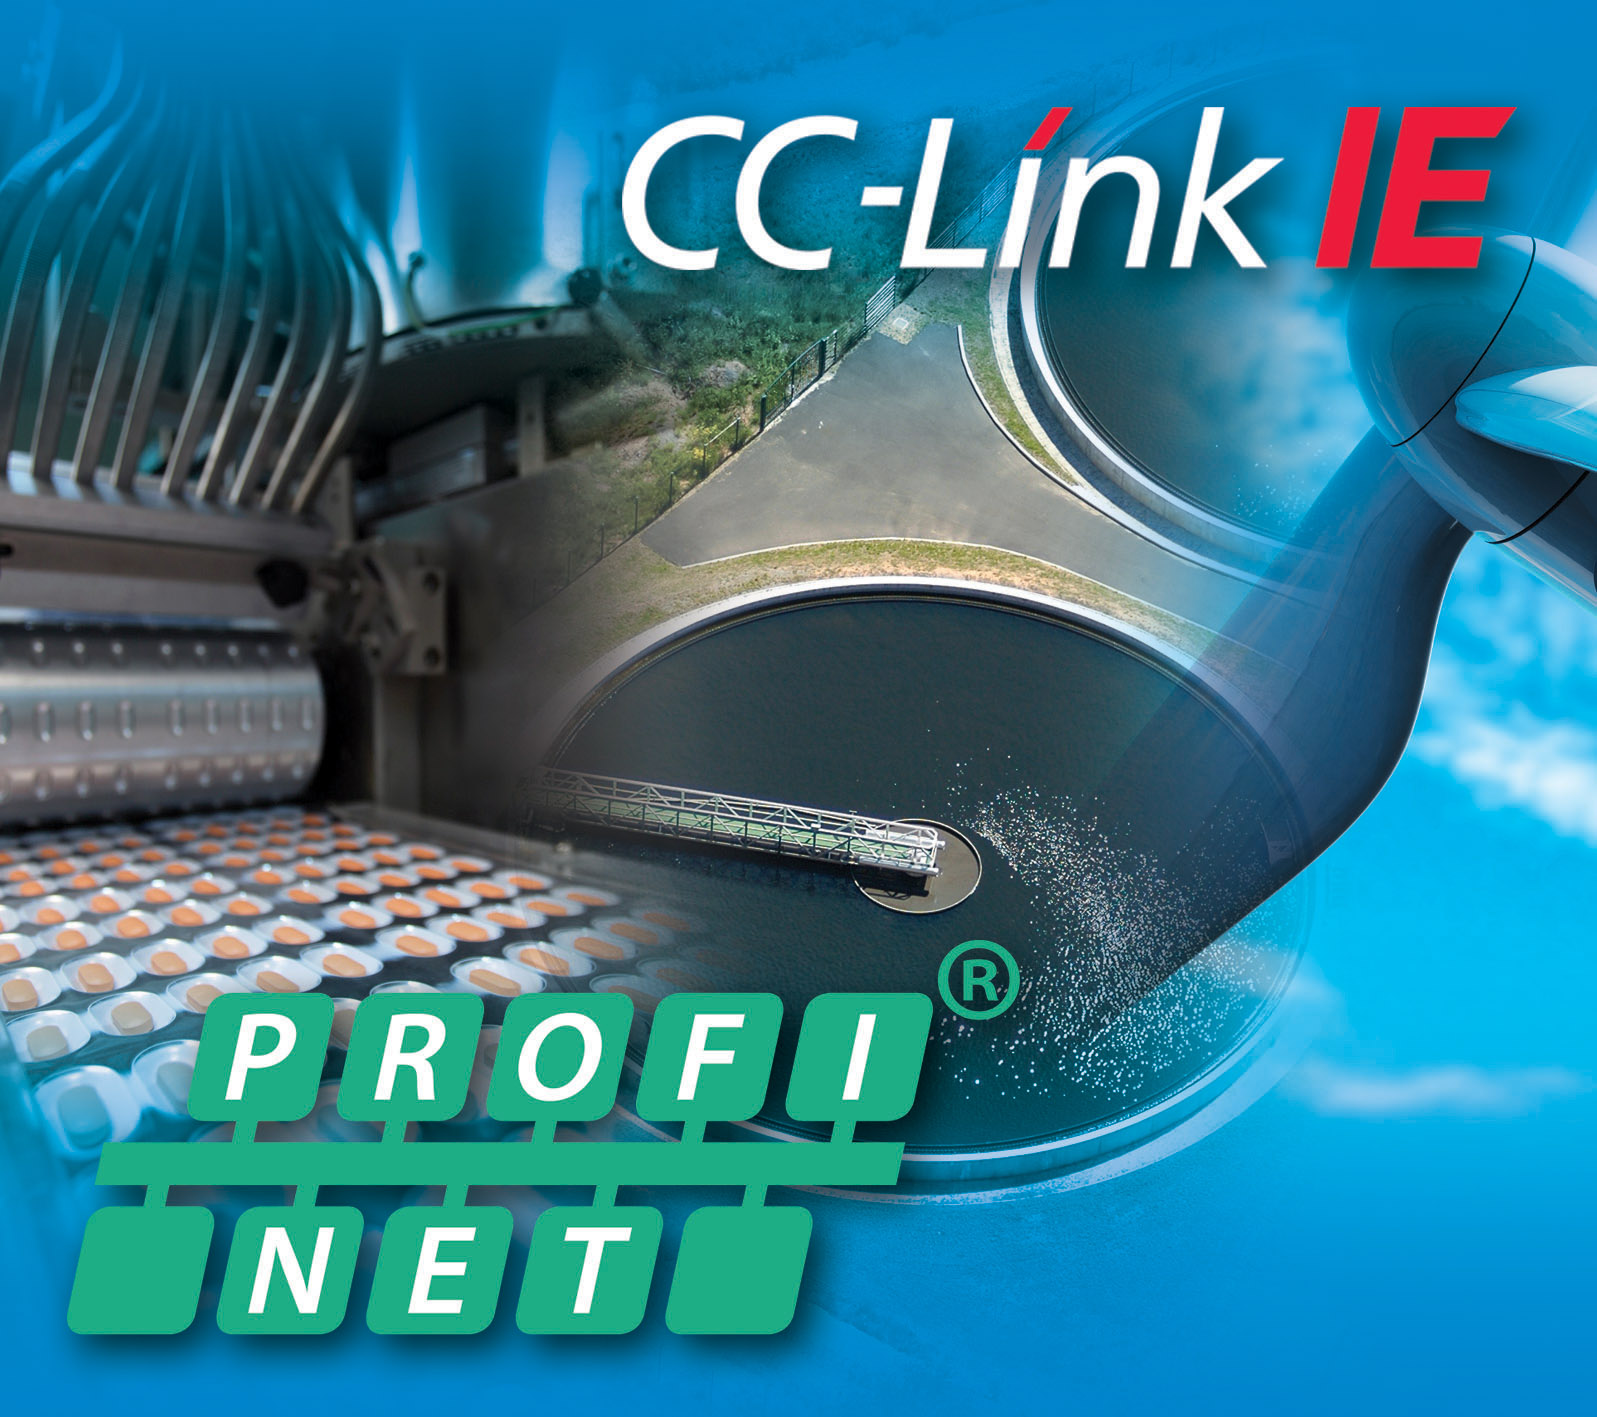 CC-Link IE and PROFINET protocol transparency to revolutionise global machine interoperability